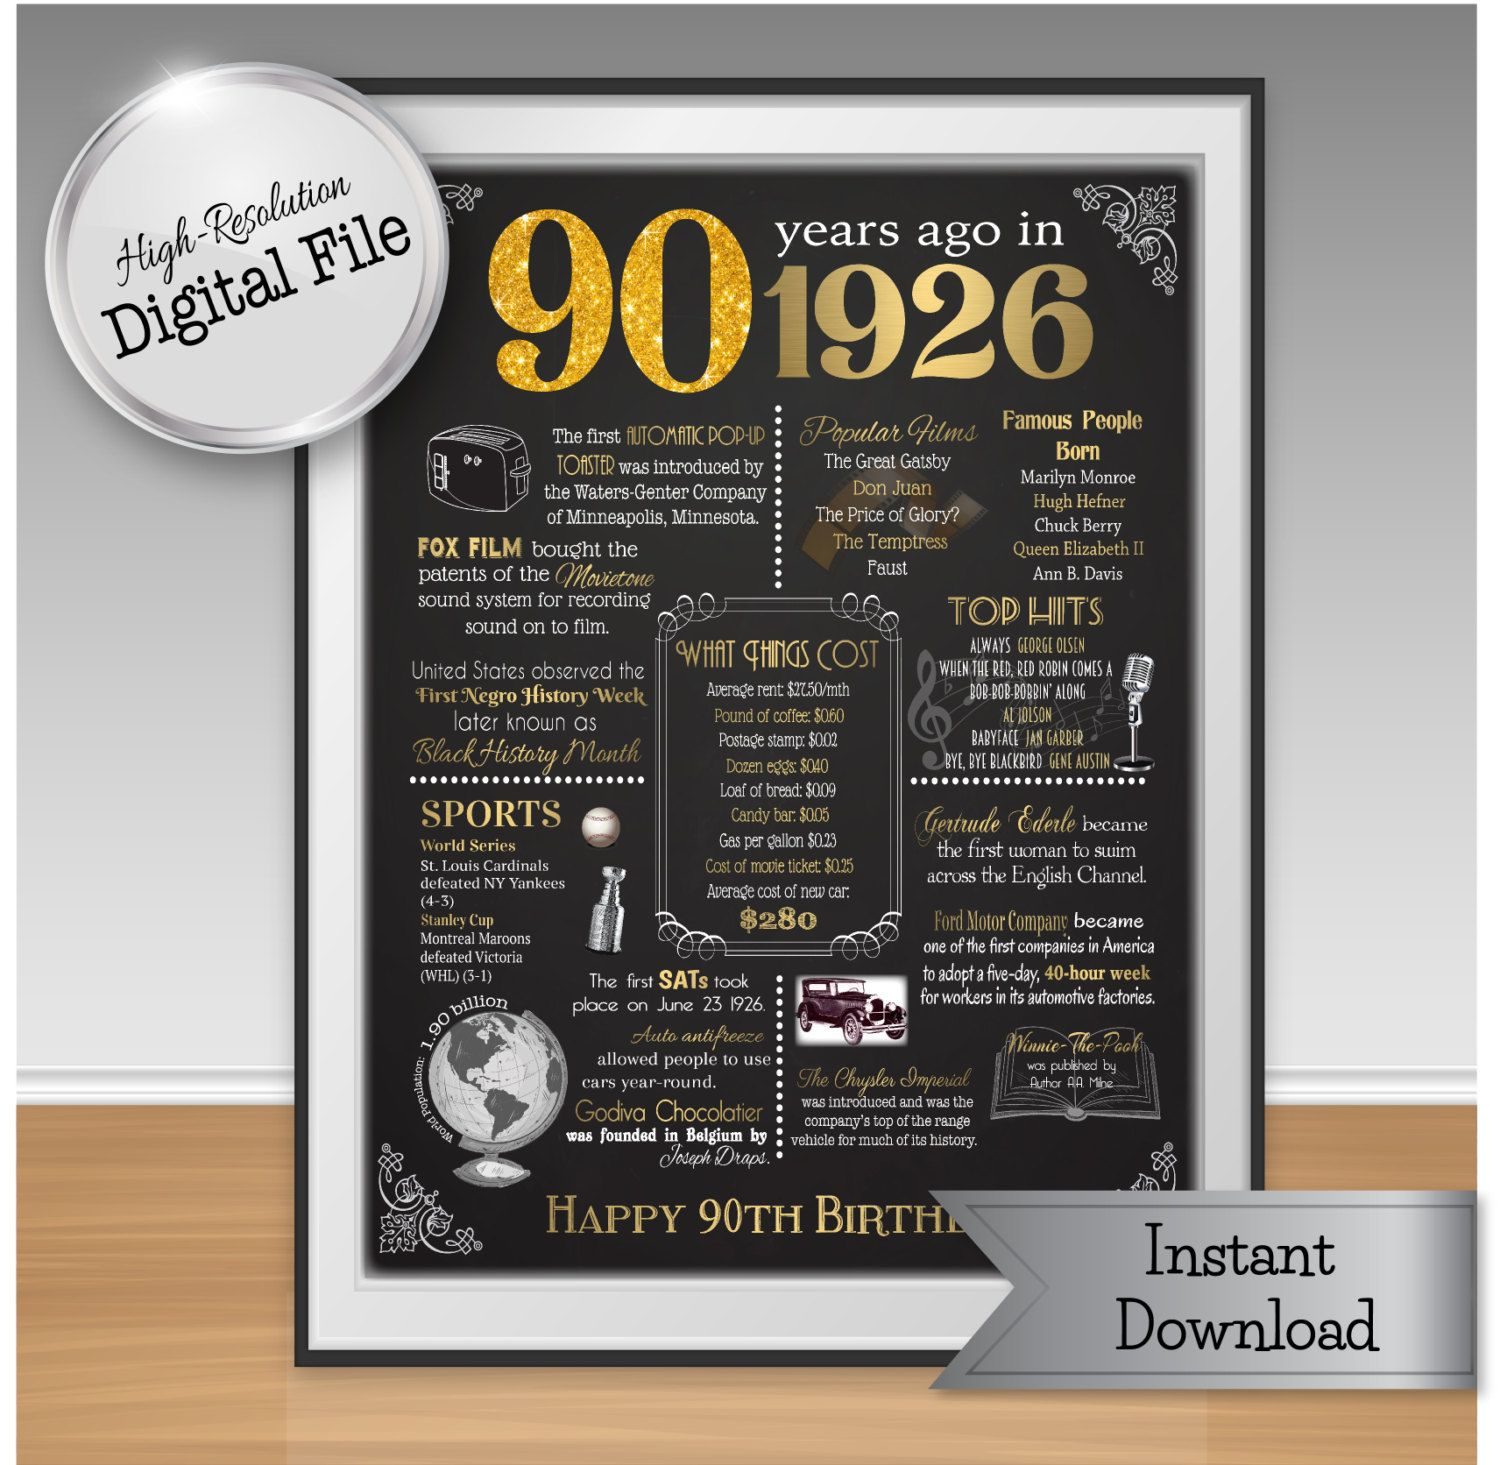 90th Birthday Print Instant Download 1926 Events by JJsDesignz